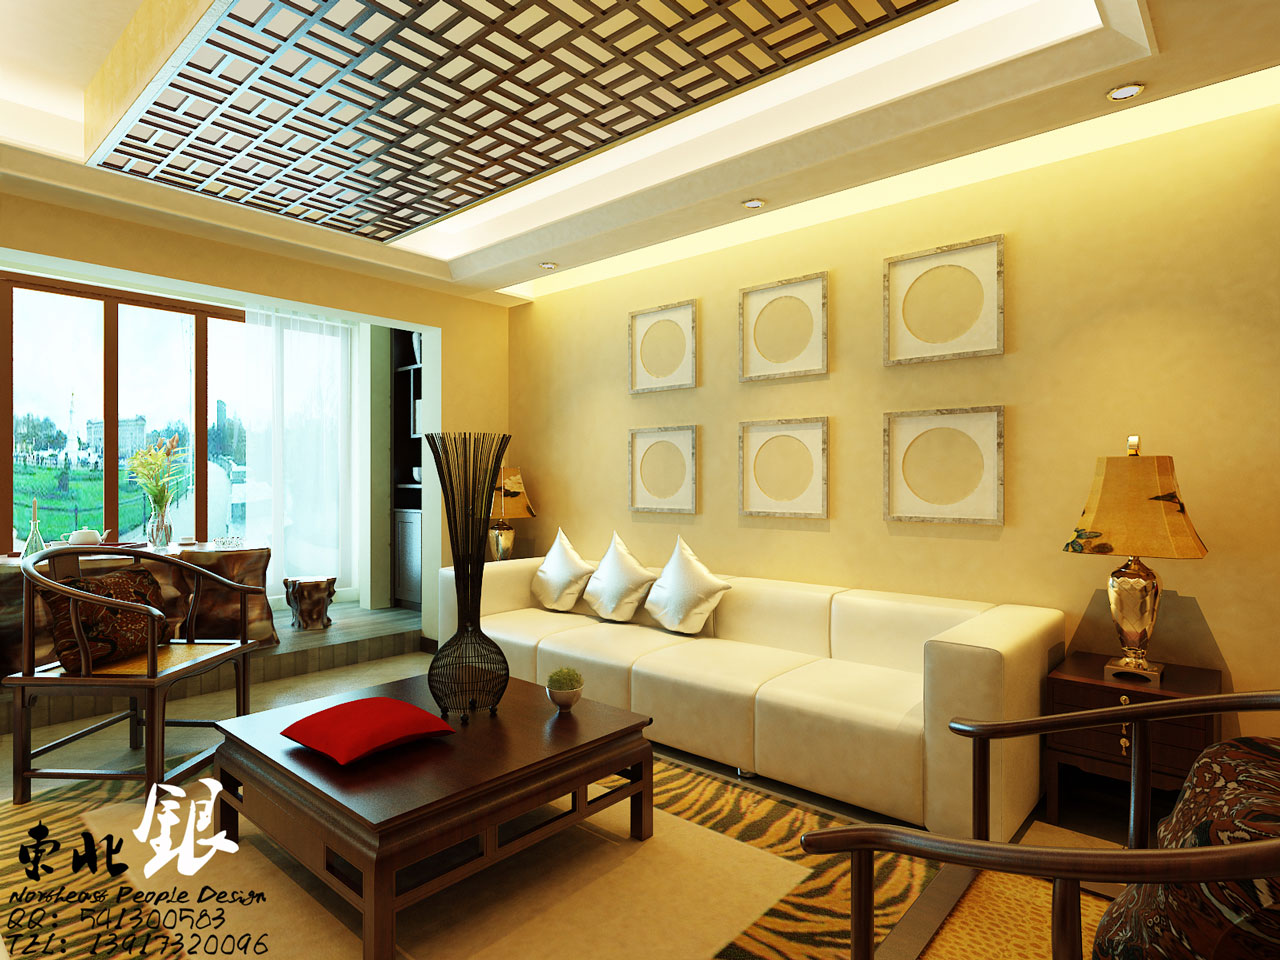 Asian inspired wall art interior design ideas for Asian interior design